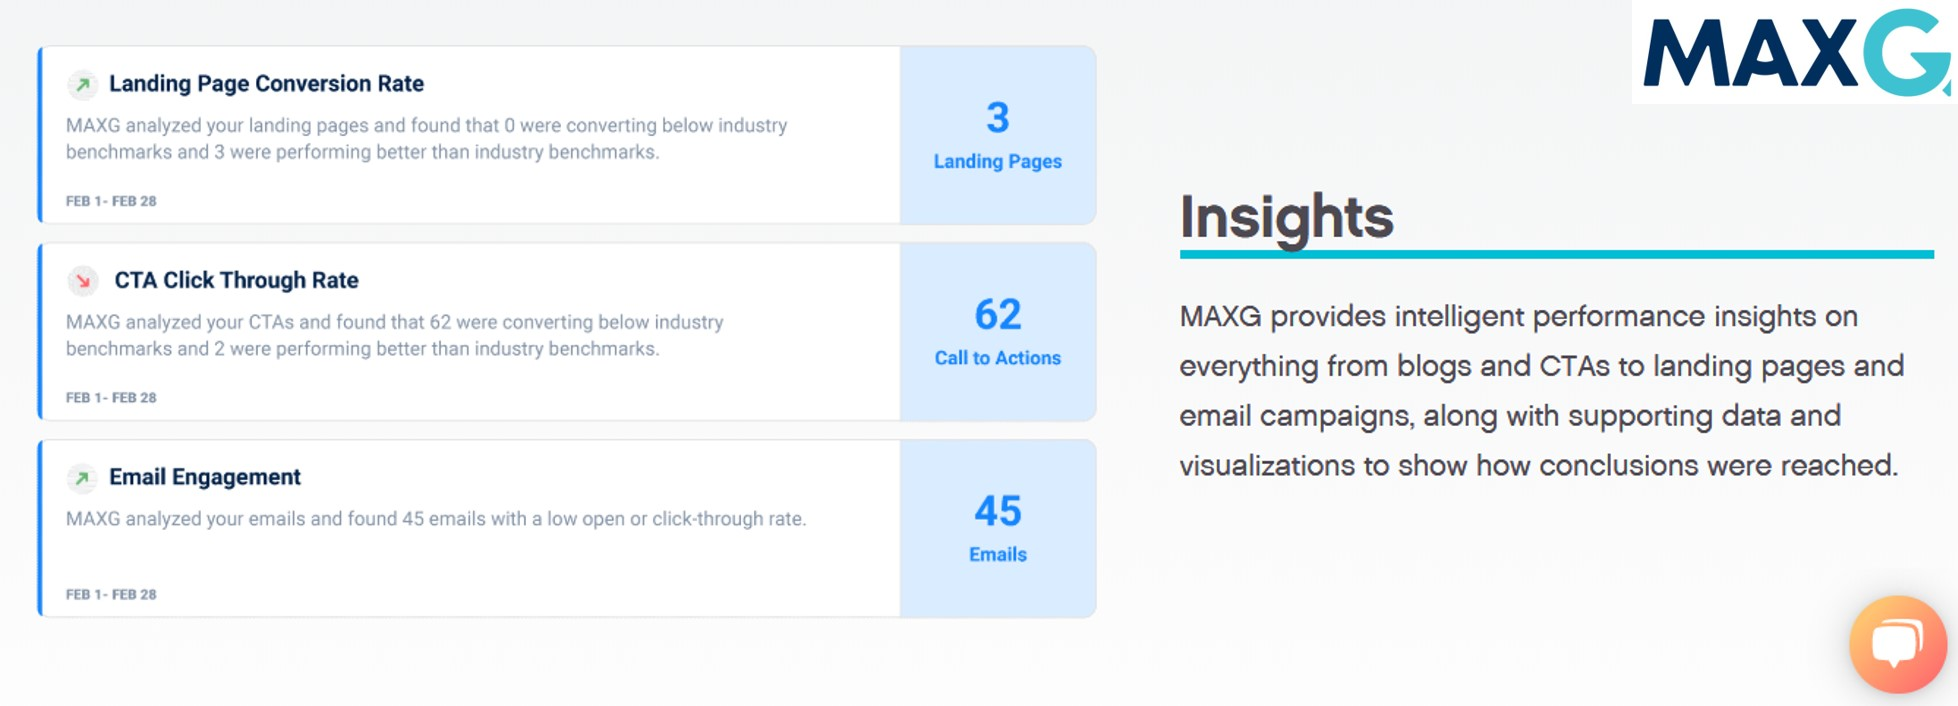 Insights with MAXG